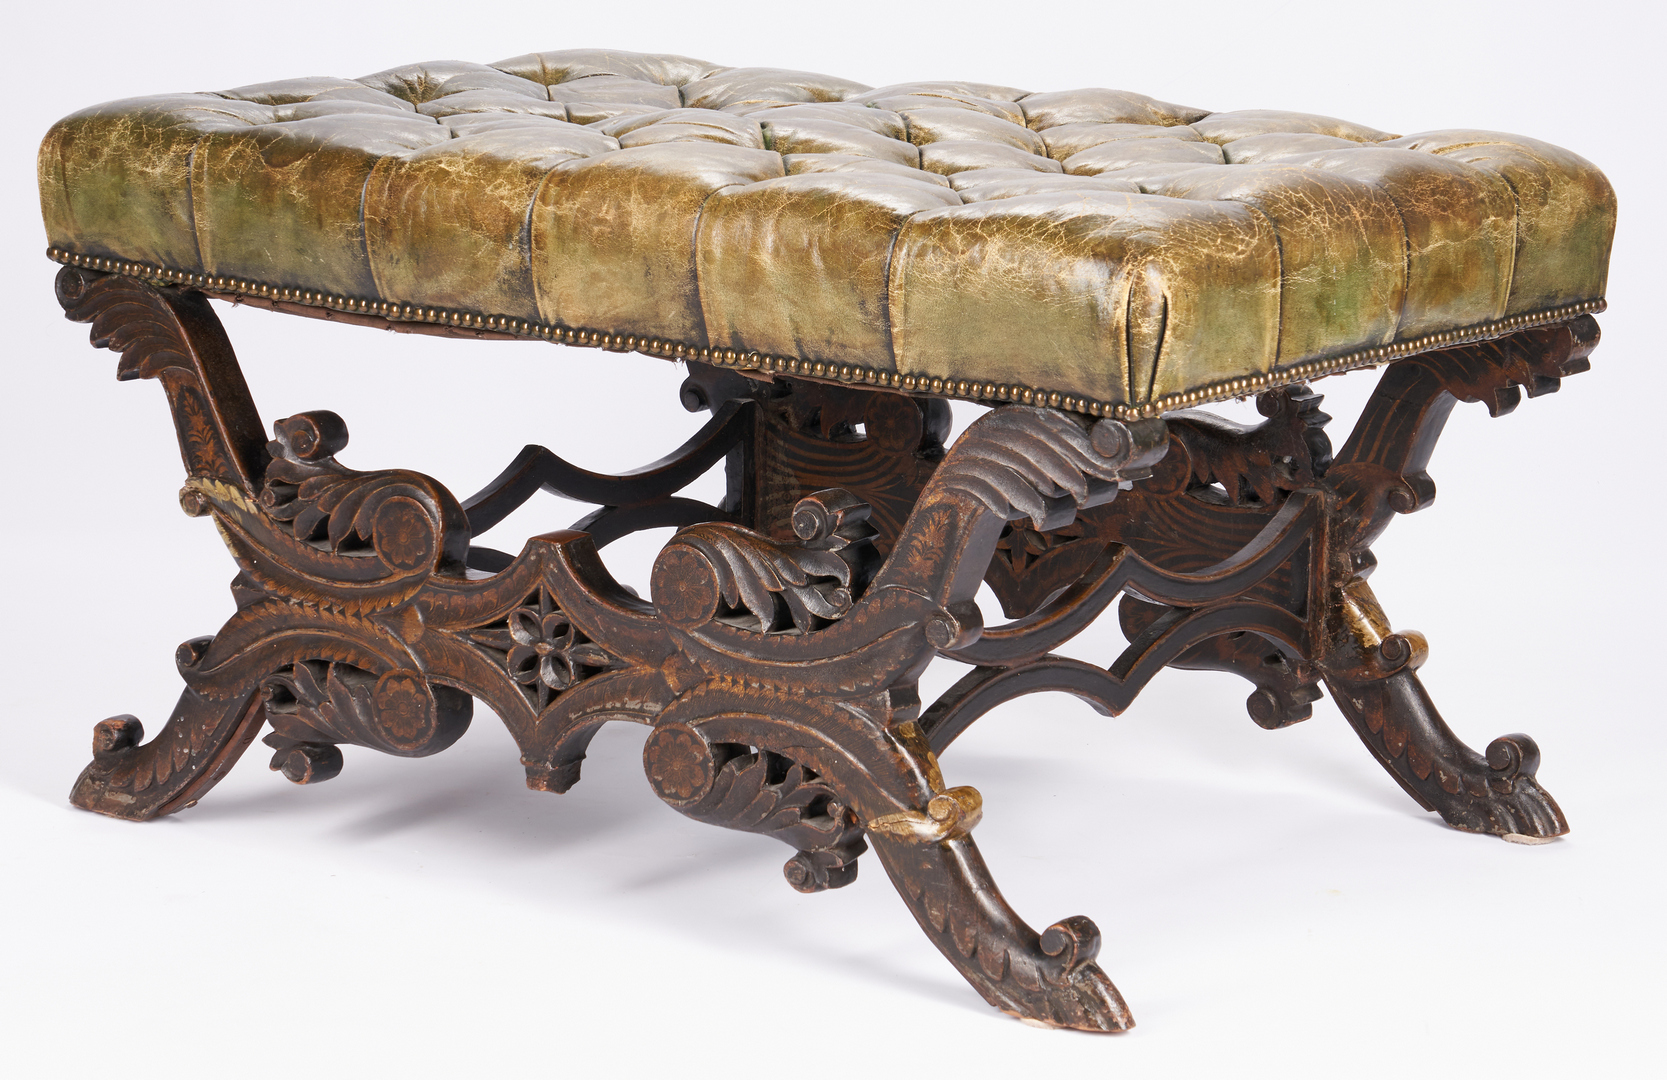 Lot 203: Baroque Style Tufted Leather Bench